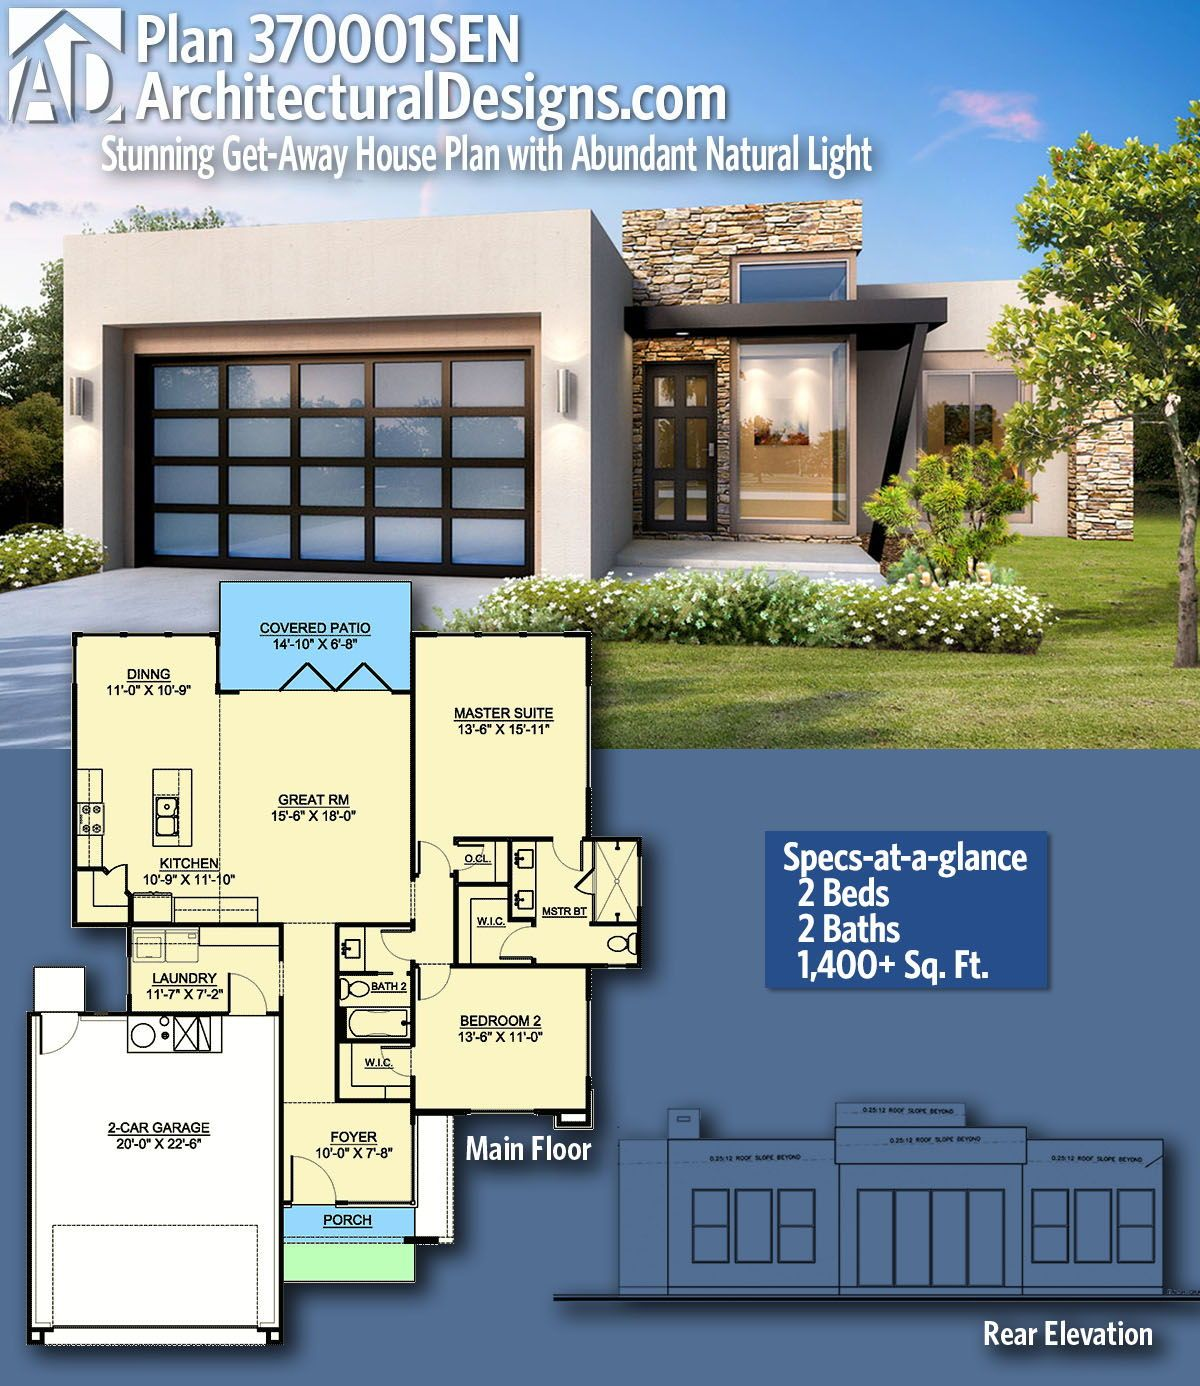 Architectural Designs Home Plan 370001sen Gives You 2 Bedrooms 2 Baths And 1 400 Sq Ft Ready When You Are Where House Plans House Design Metal House Plans